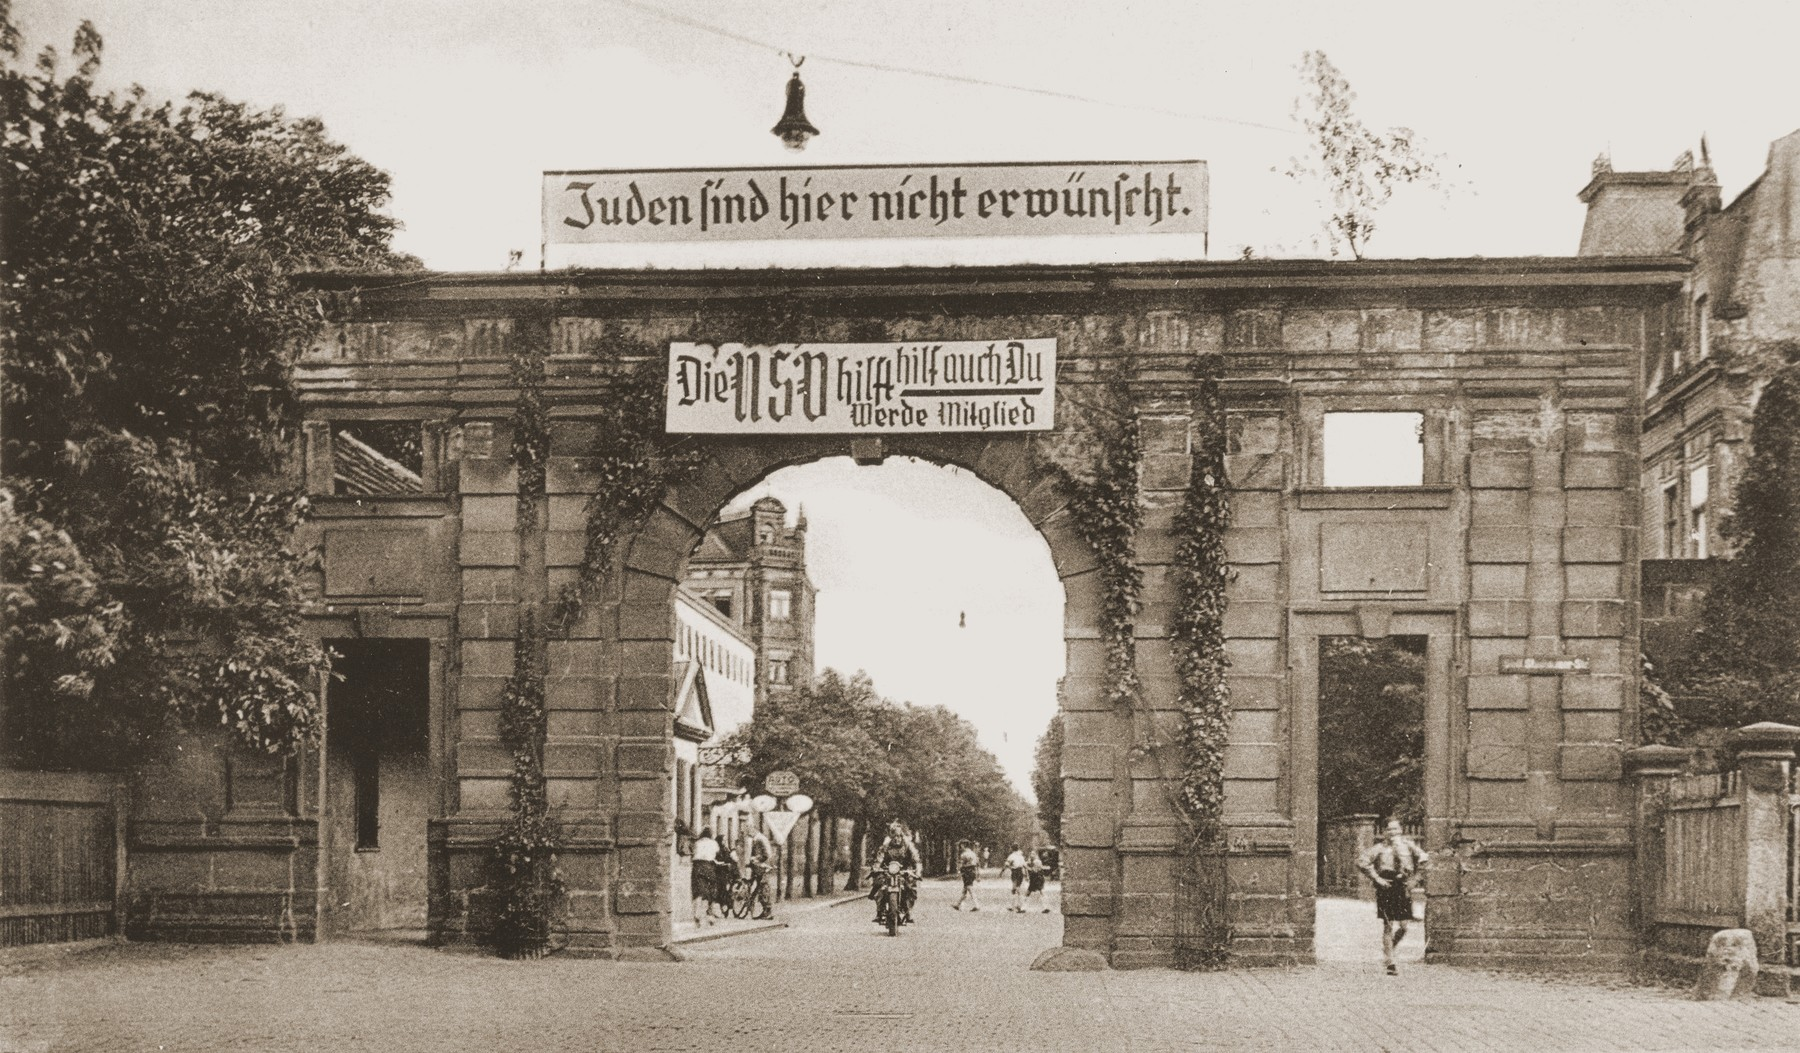 View of Nuernberger Tor, one of the entrances to the University of Erlangen, on top of which a banner has been placed stating that Jews are not desired here.  Below it hangs a Nazi party recruitment banner.